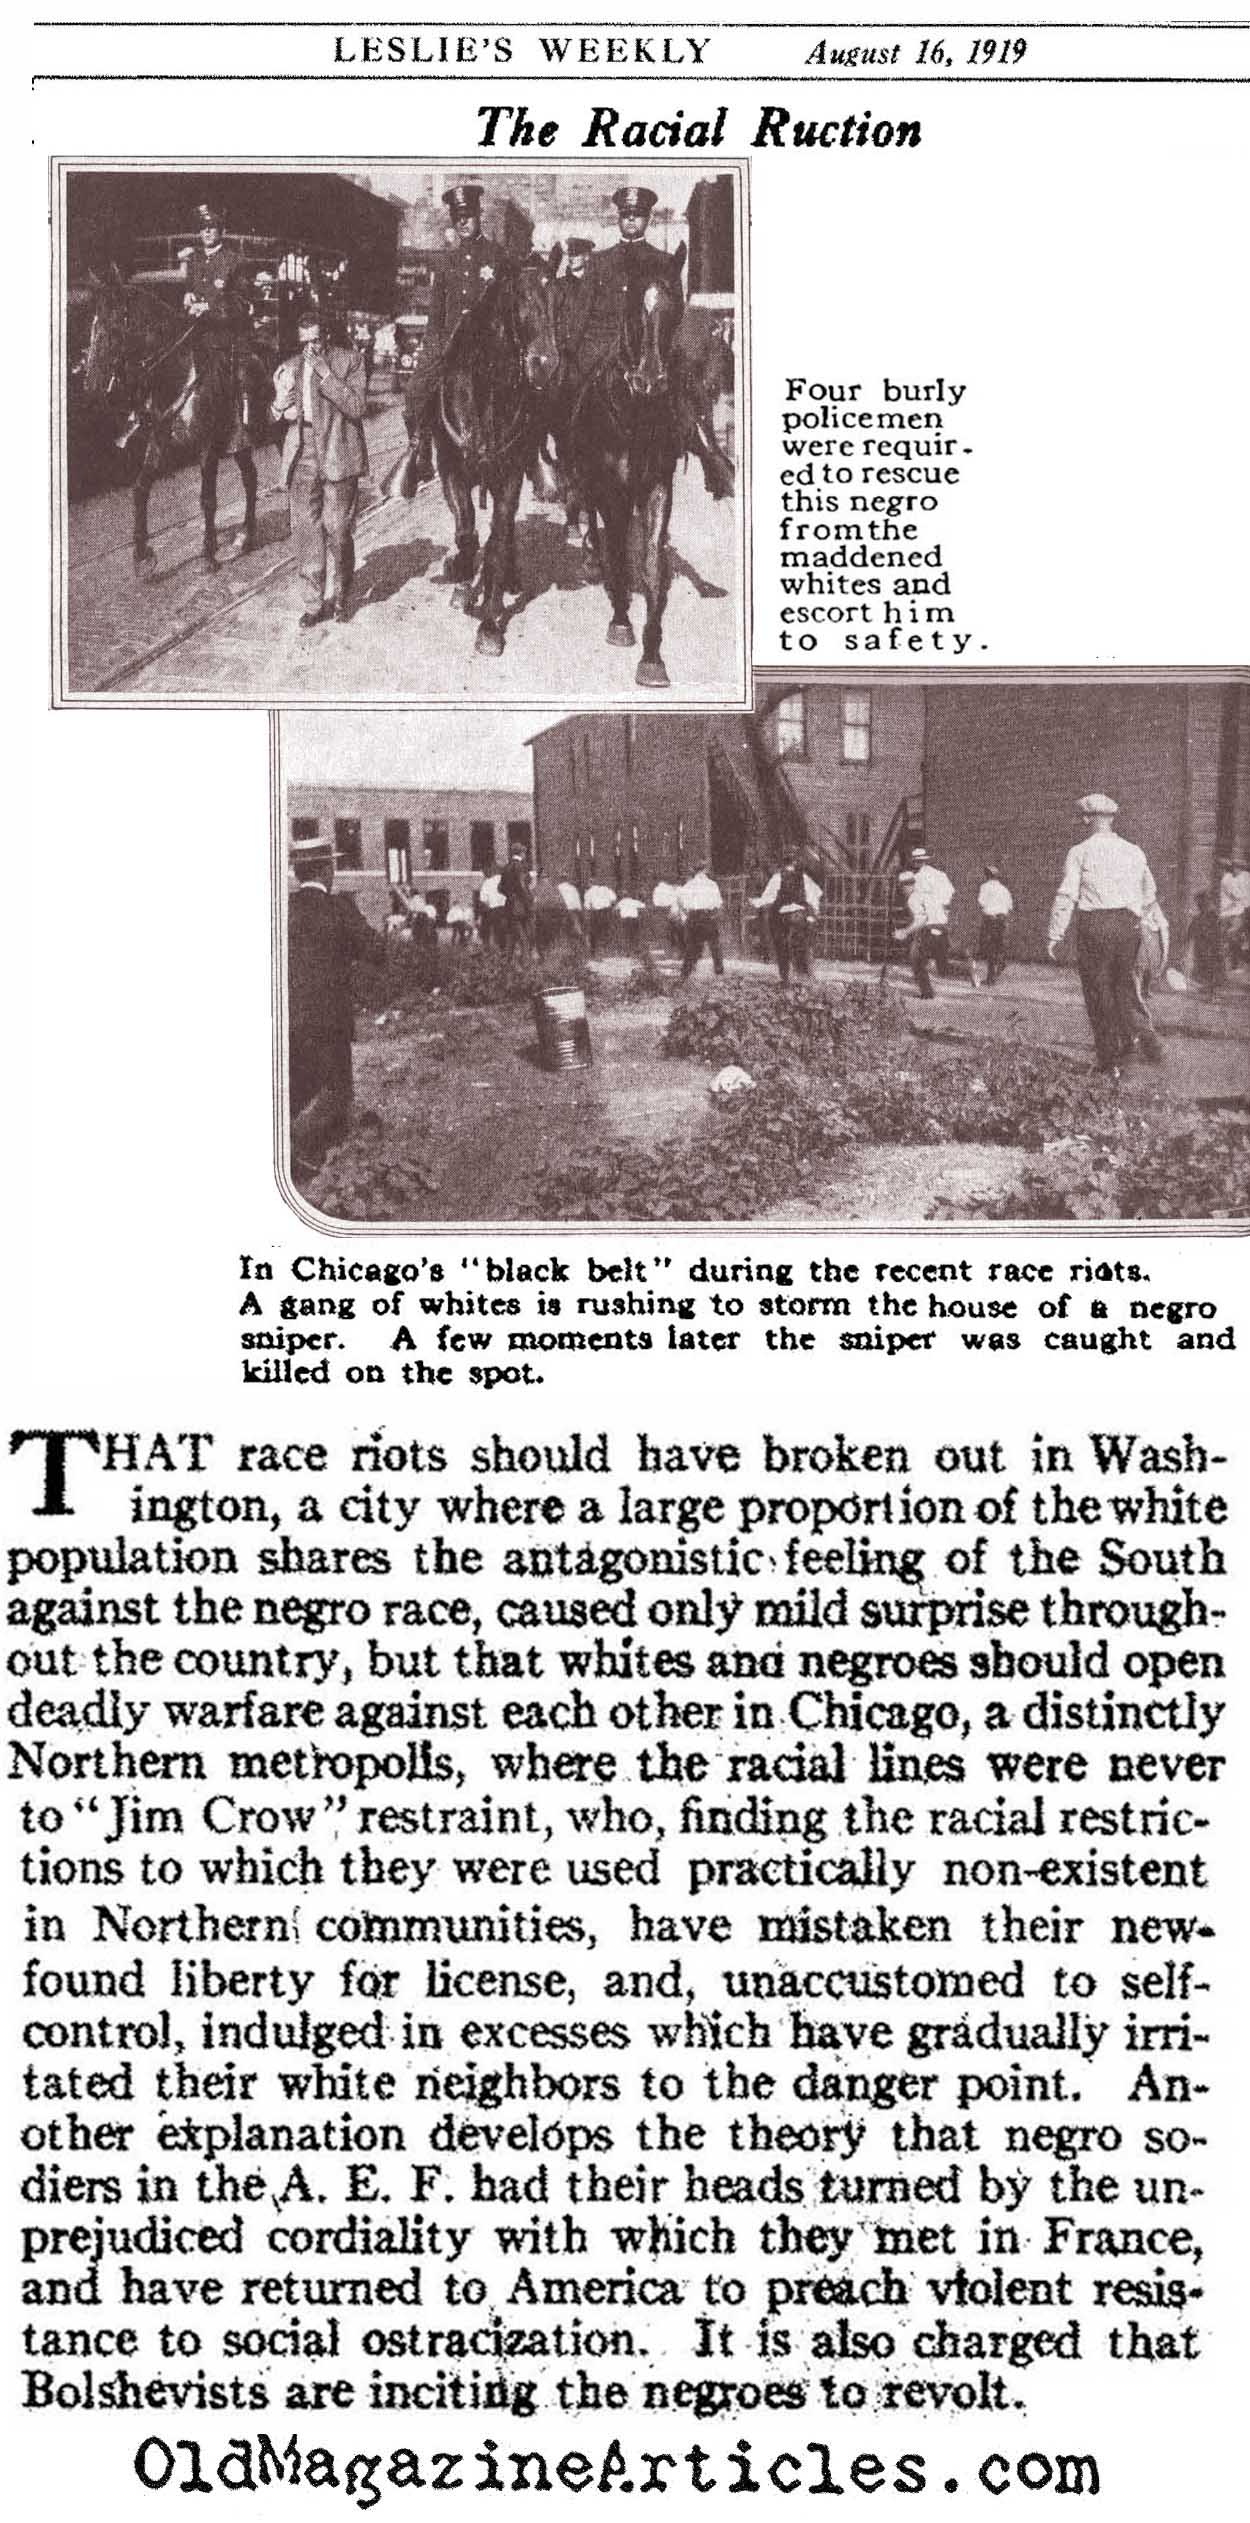 Race Riots in Chicago and Washington (Leslie's Weekly, 1919)